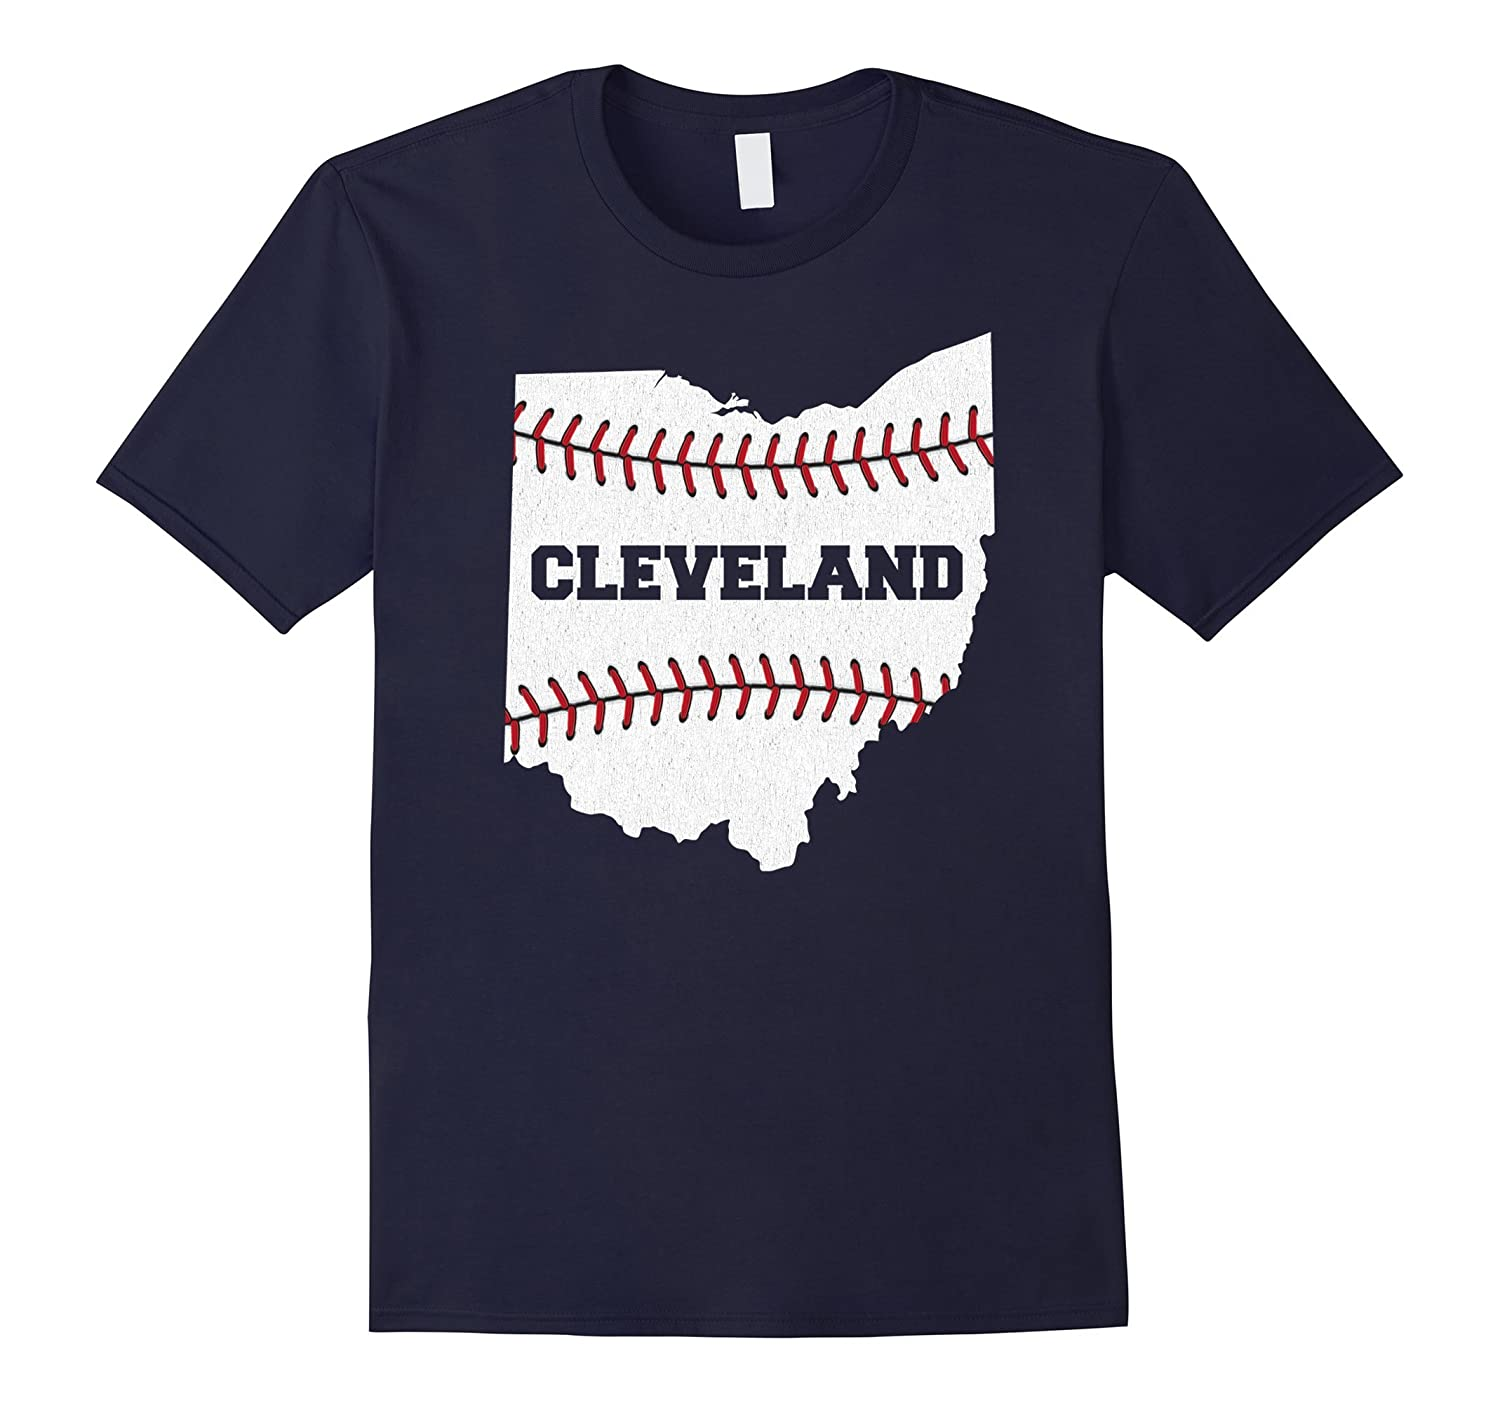 216 Cleveland Ohio Baseball T Shirt Men Women Boys Girls-BN